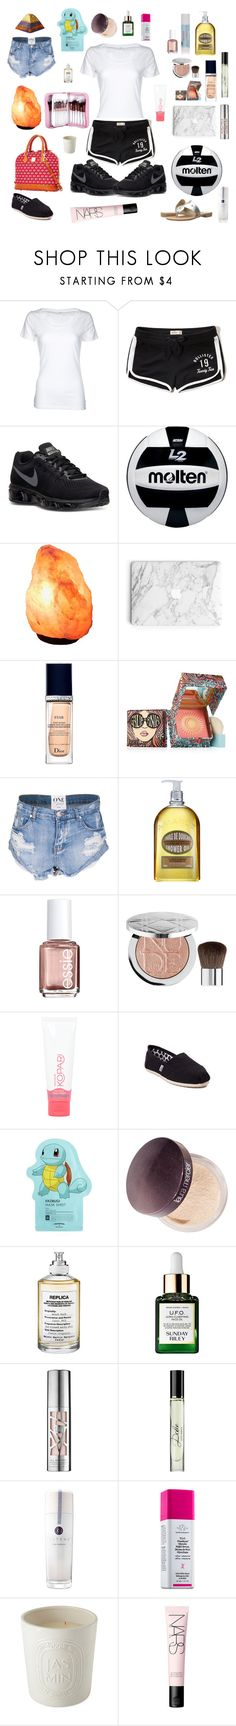 """Untitled #1314"" by mledoll ❤ liked on Polyvore featuring Simplex Apparel, Hollister Co., NIKE, Christian Dior, Benefit, OneTeaspoon, L'Occitane, Essie, Sephora Collection and Kopari"